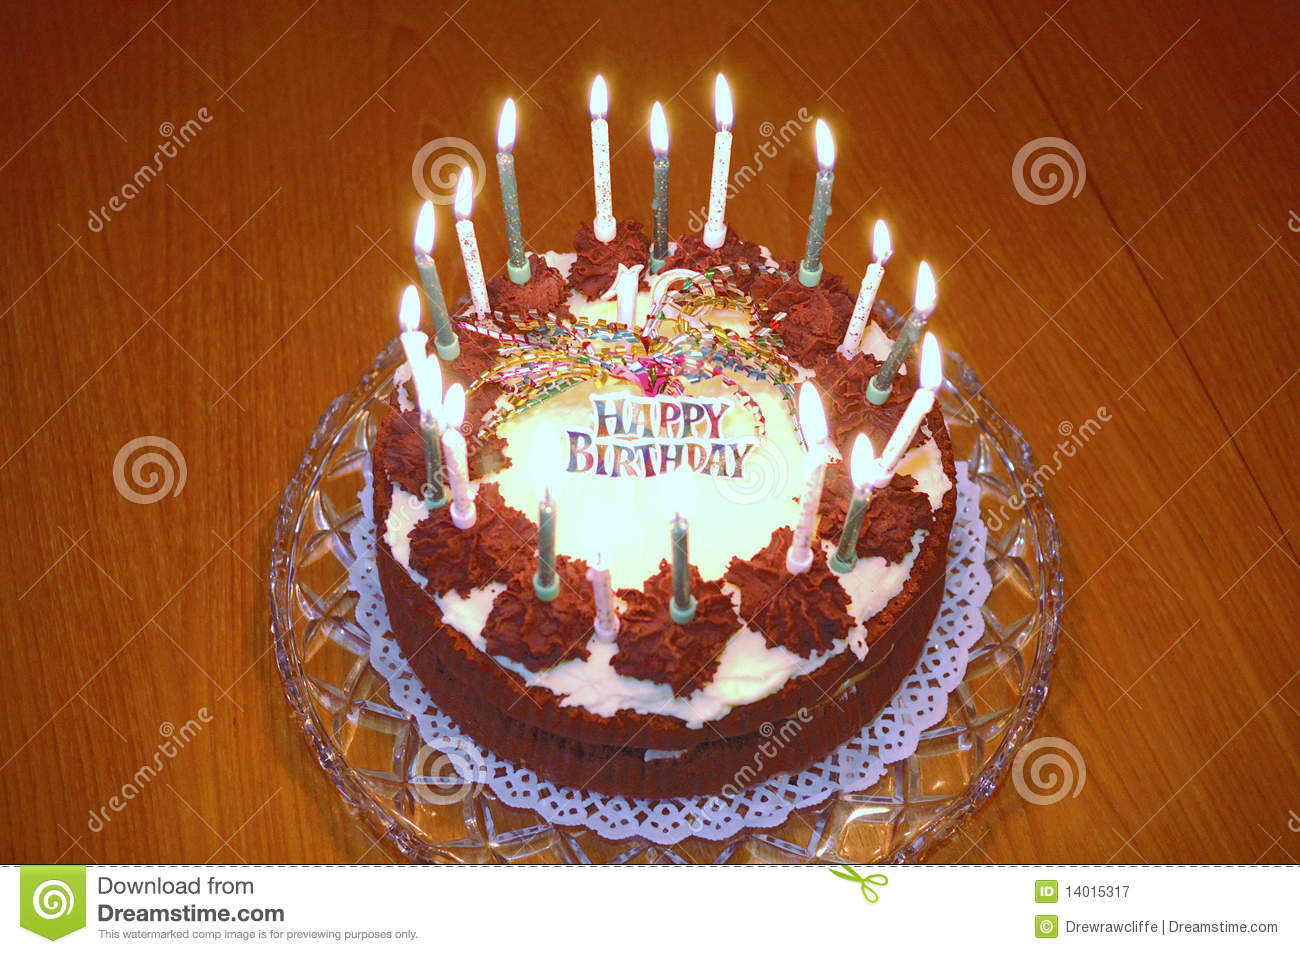 Birthday Cake Burning Royalty Free Stock Photography